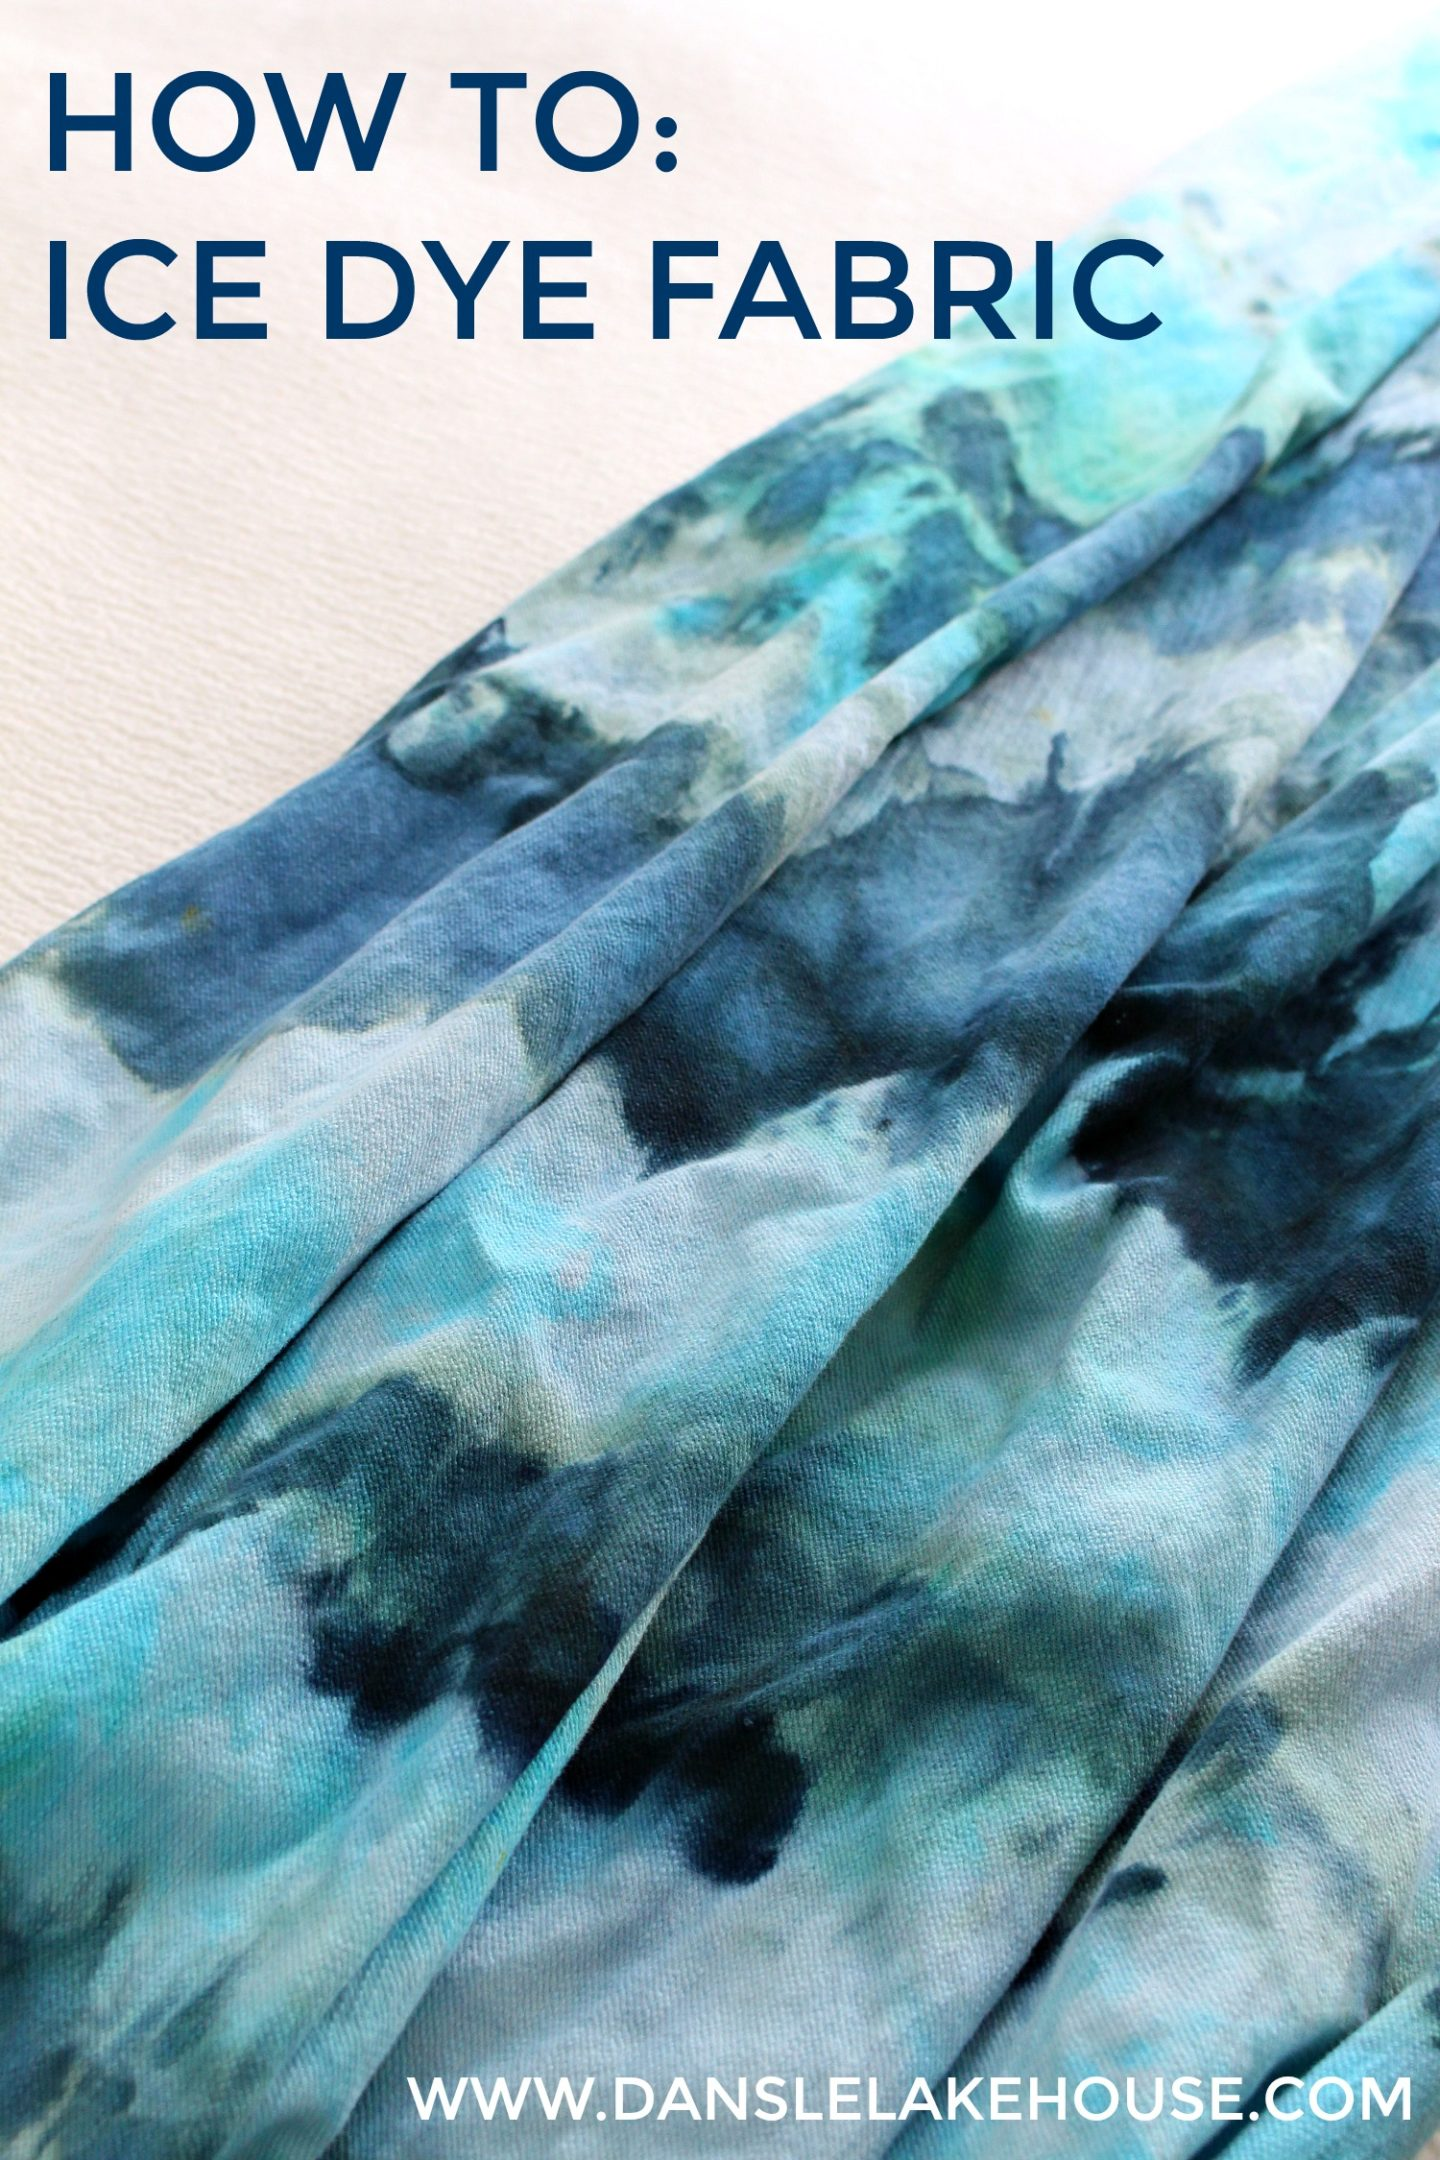 How to Ice Dye Fabric: A Tutorial with Troubleshooting, Tips and Links to Other Ice Dye Projects #handdyedfabric #icedye #tiedye